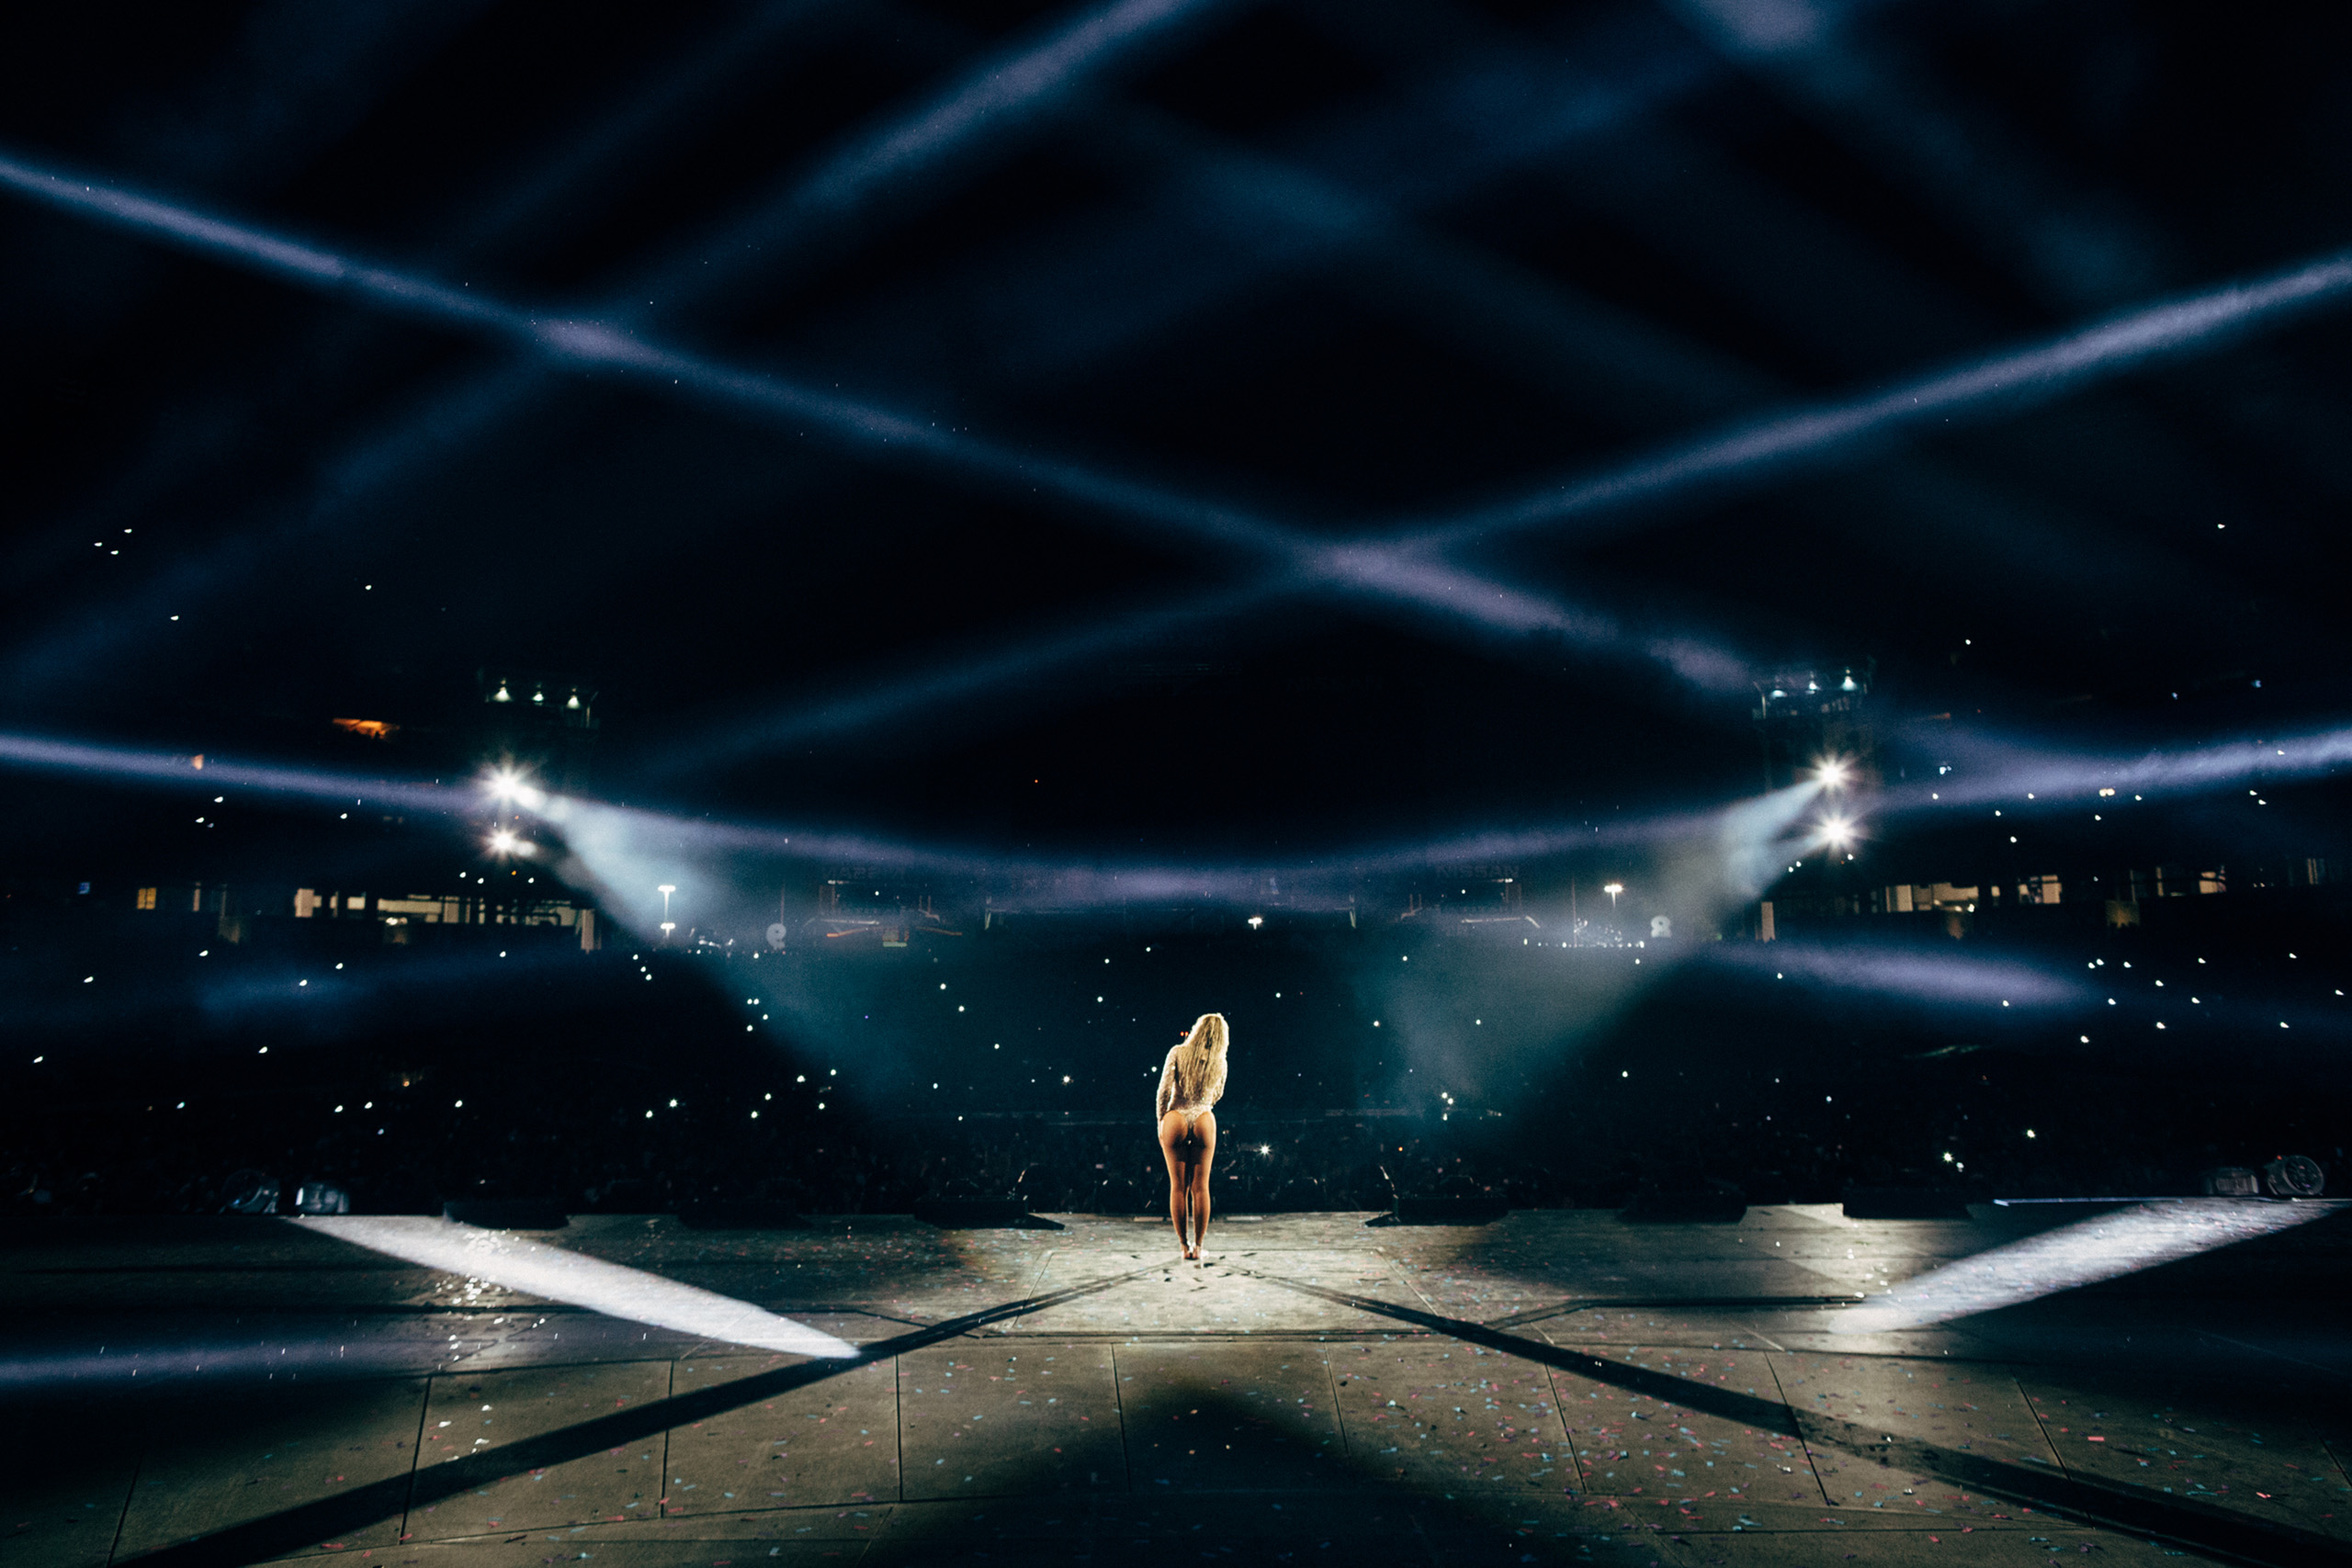 Beyoncé sings to the crowd onstage during the  Formation World Tour in Nashville on Oct. 3, 2016.